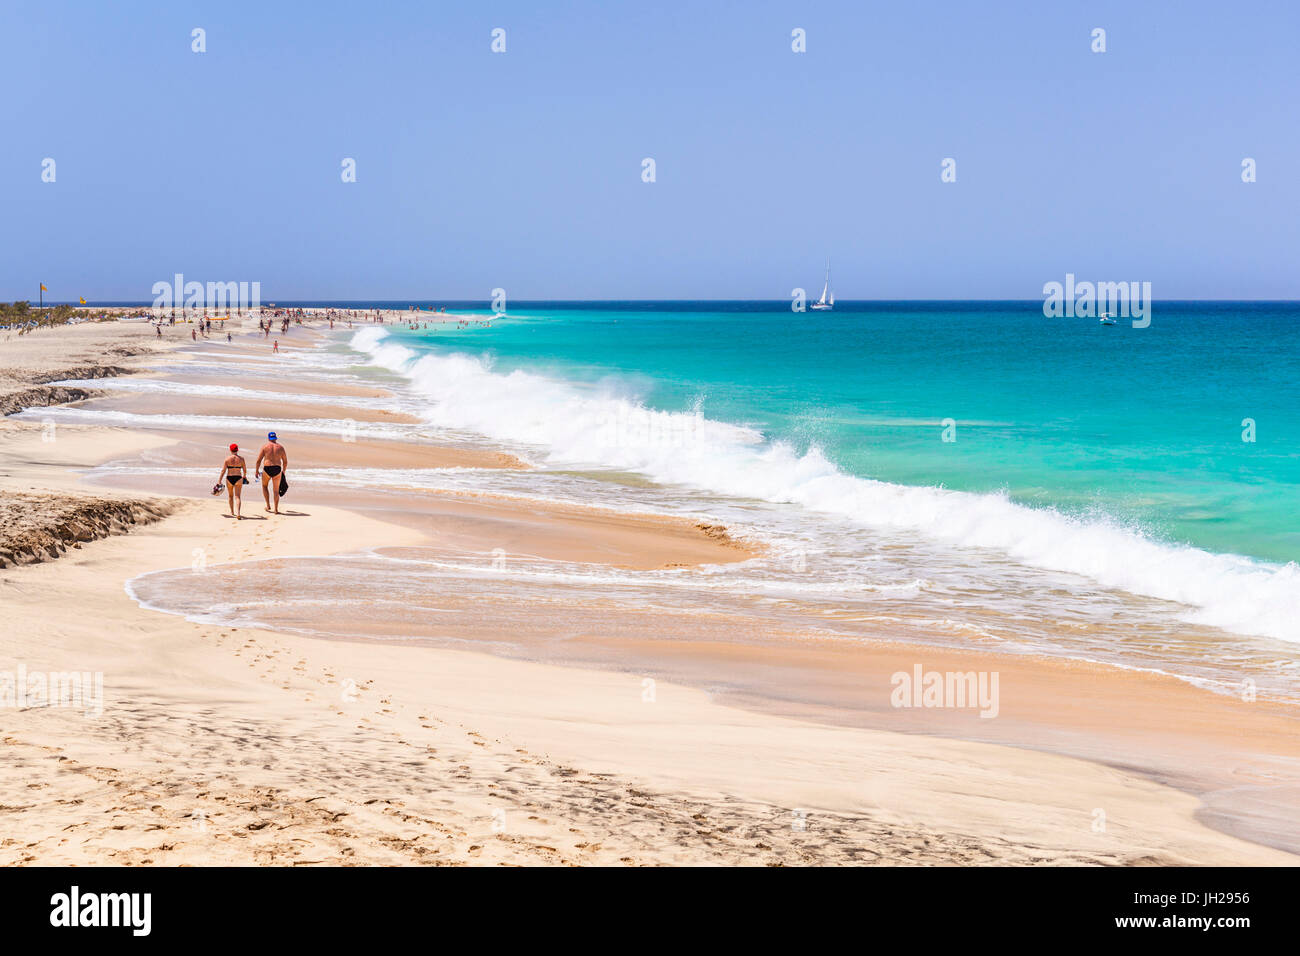 Tourists walking along the sandy beach, Ponta Preta beach, Santa Maria, Sal Island, Cape Verde, Atlantic, Africa - Stock Image